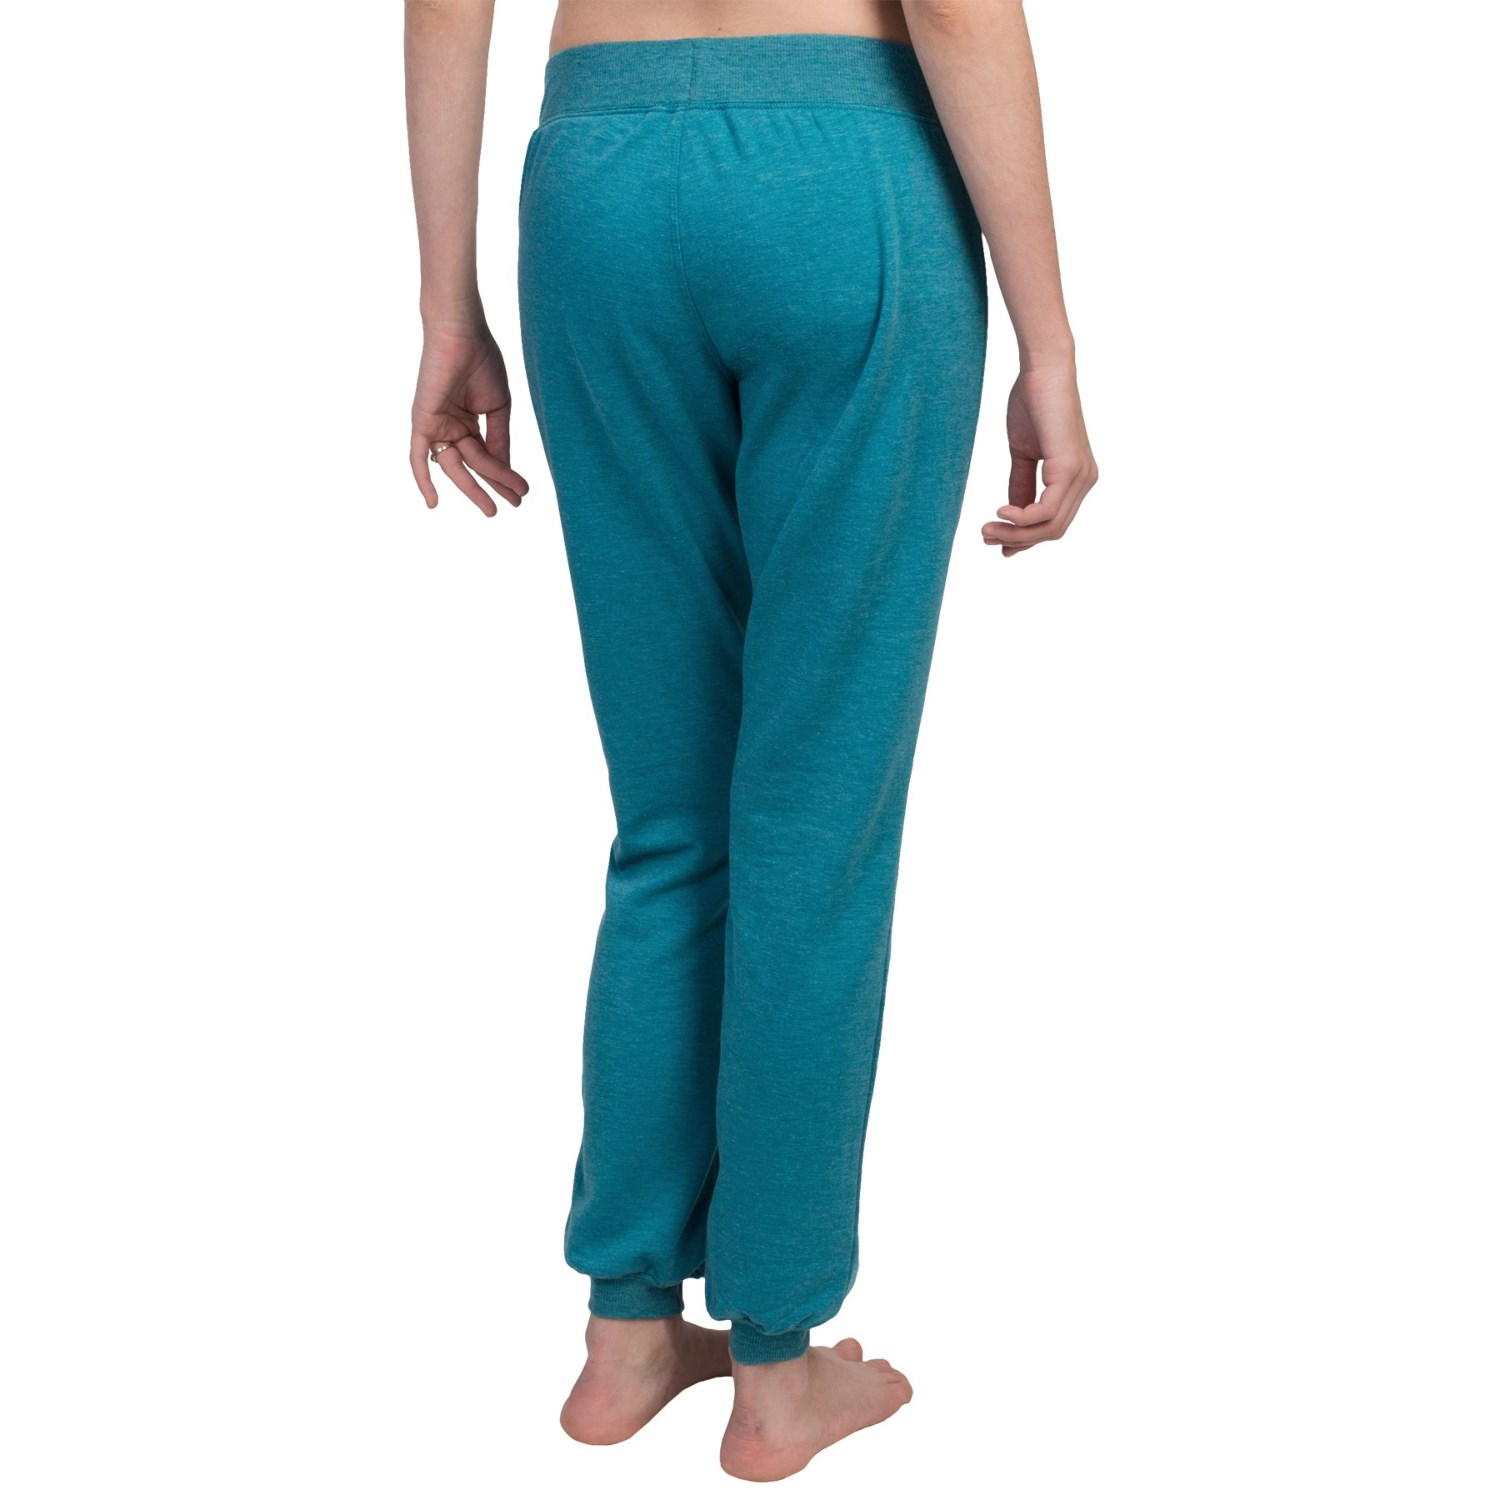 Enjoy free shipping and easy returns every day at Kohl's. Find great deals on Womens Sweatpants at Kohl's today!